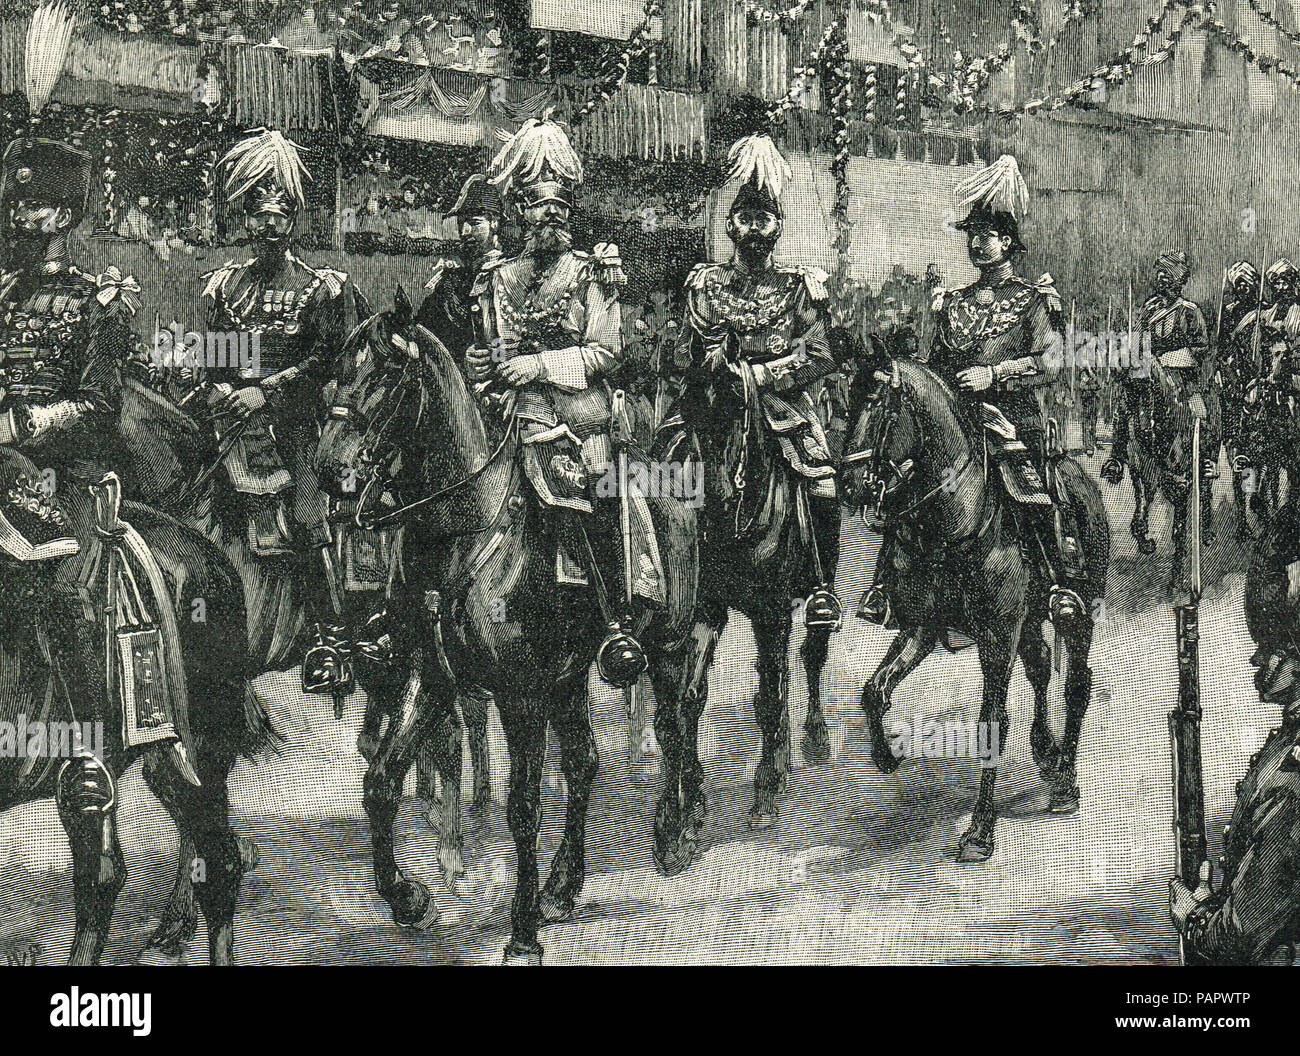 Queen Victoria's Golden jubilee.  The escort of Princes in the royal procession, 21 June 1887 - Stock Image